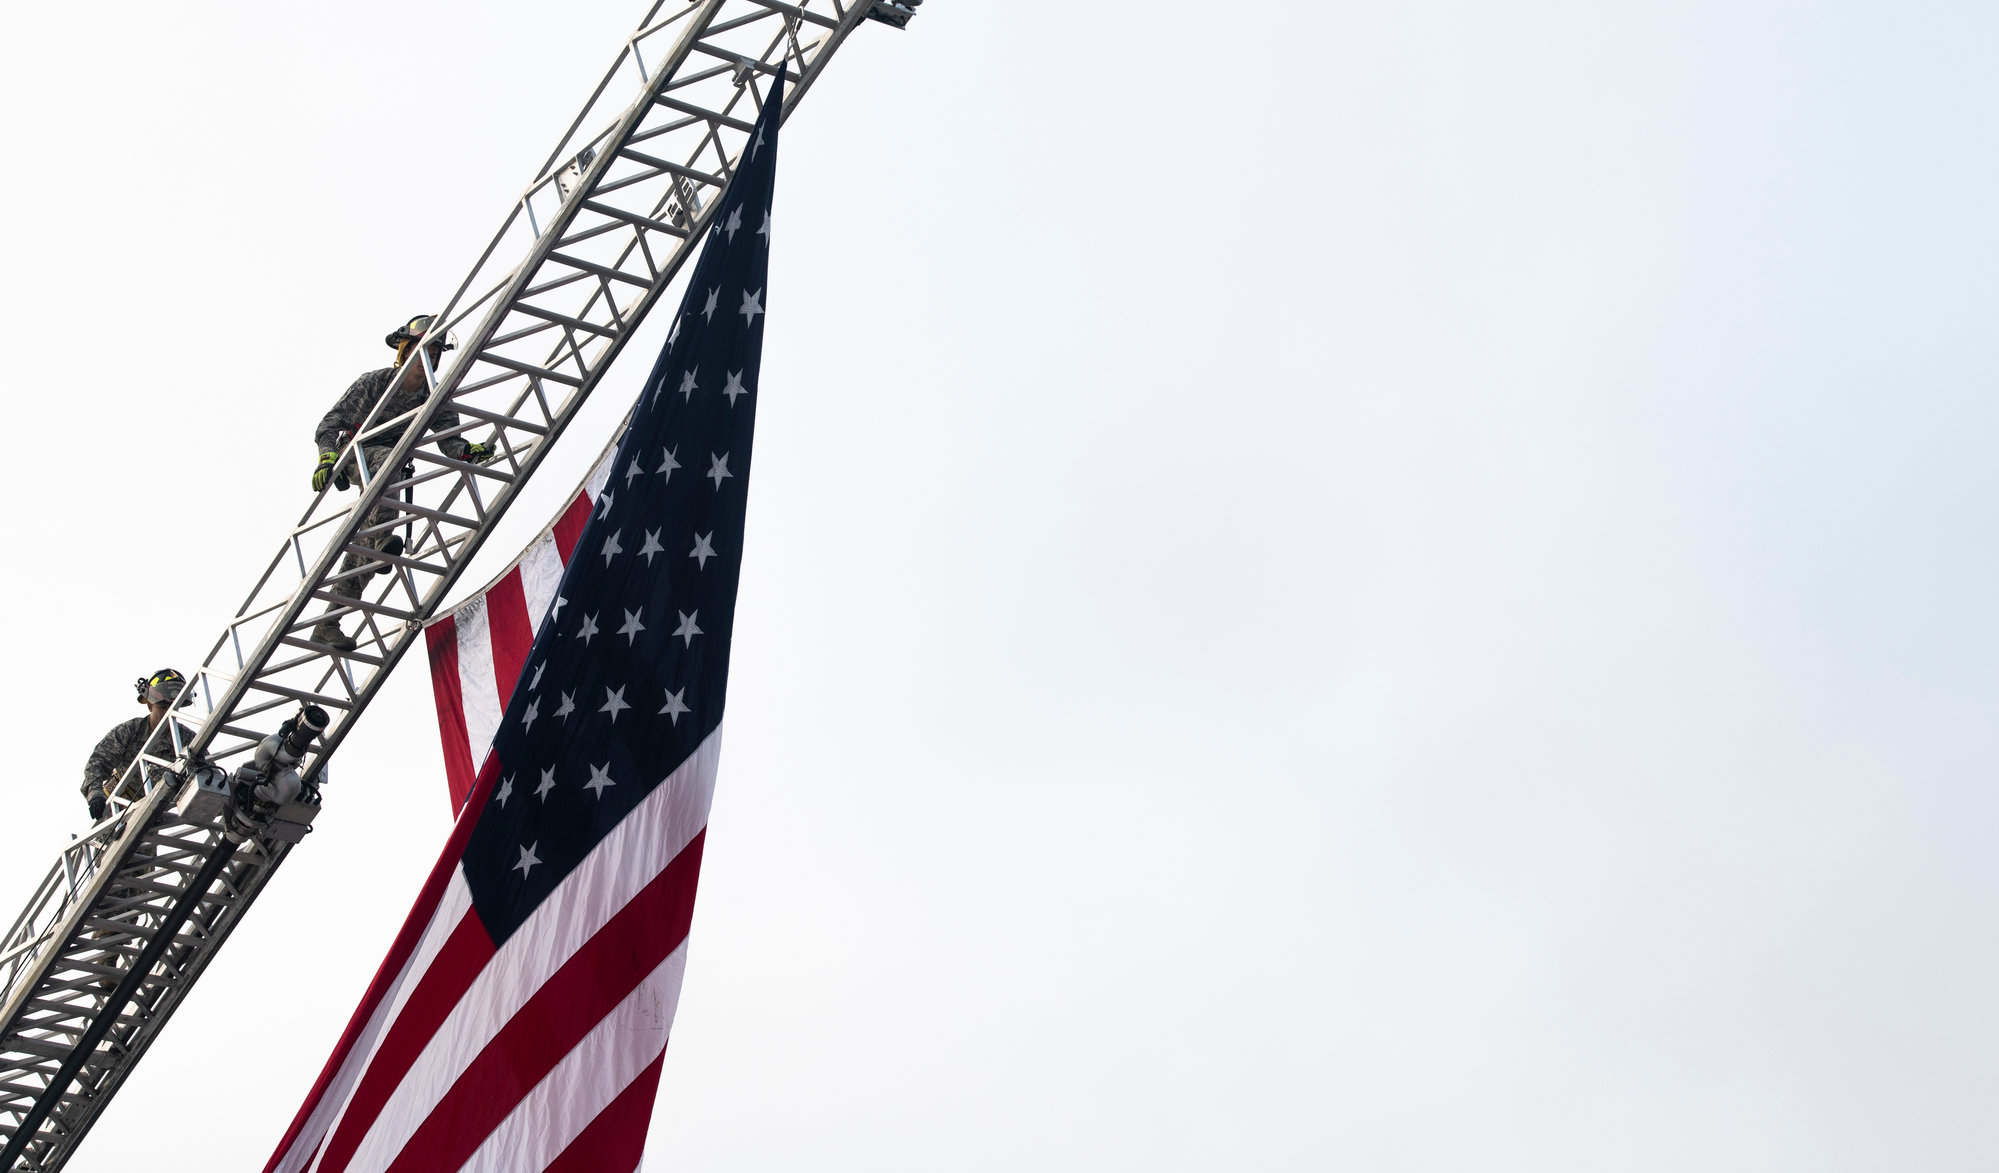 U.S. airmen assigned to the 20th Civil Engineer Squadron fire department climb a ladder after raising a flag prior to a flightline 5K at Shaw Air Force Base on Saturday. Along with static displays, guests also received the opportunity to interact  with military and civilian members.